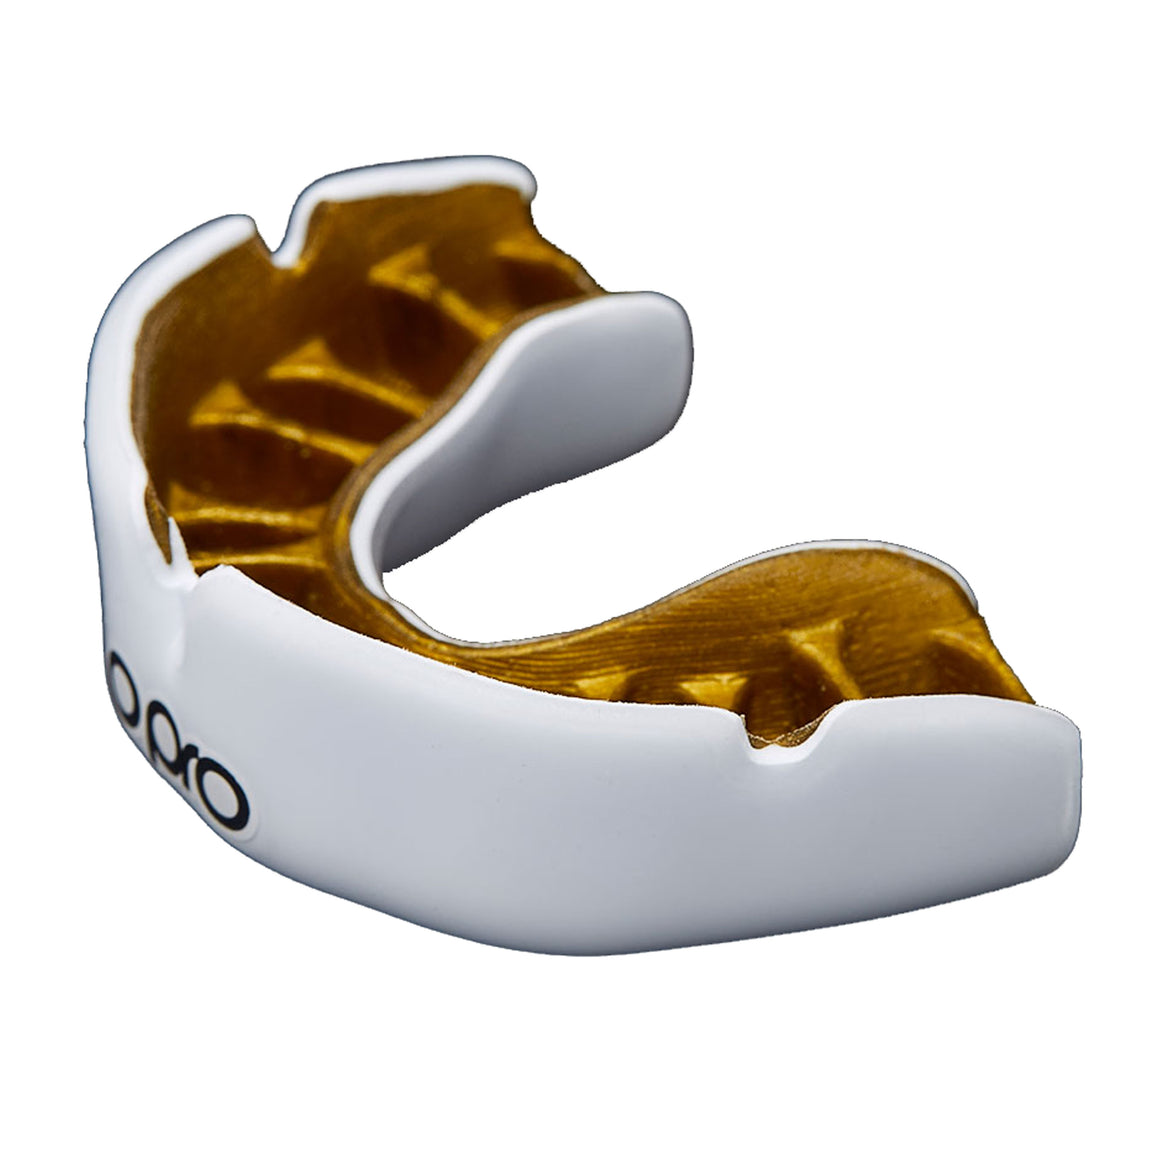 Power-Fit Mouth Guard for Adults and Juniors in White & Gold